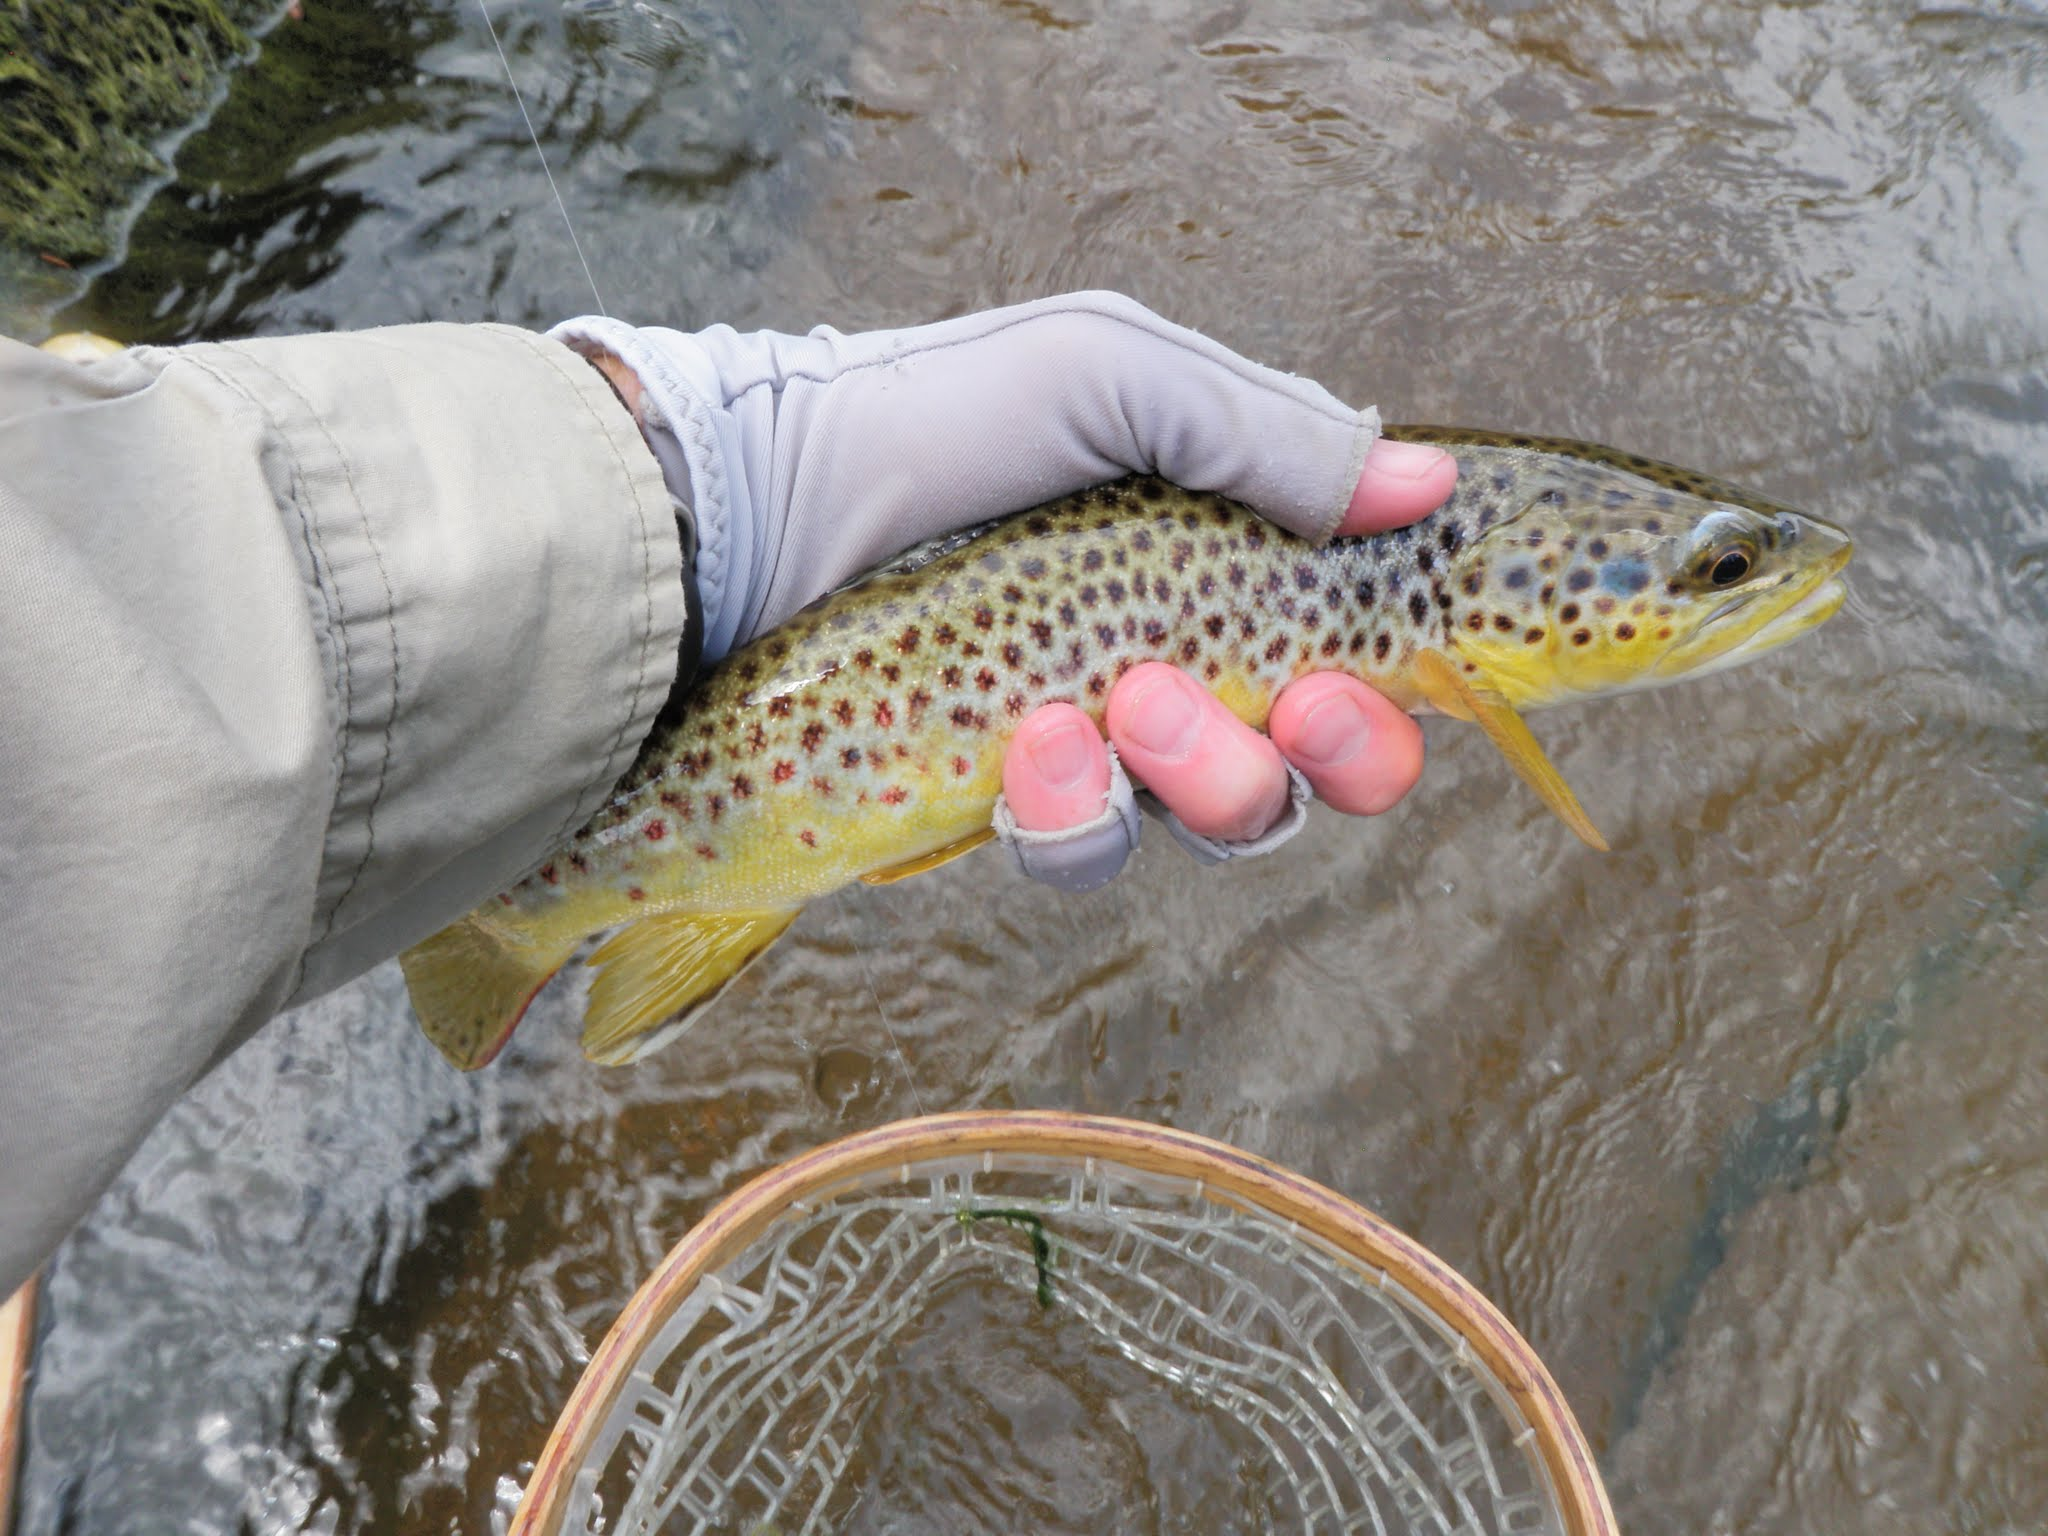 South platte river 08 28 2015 dave weller 39 s fly for Trout fishing spots near me